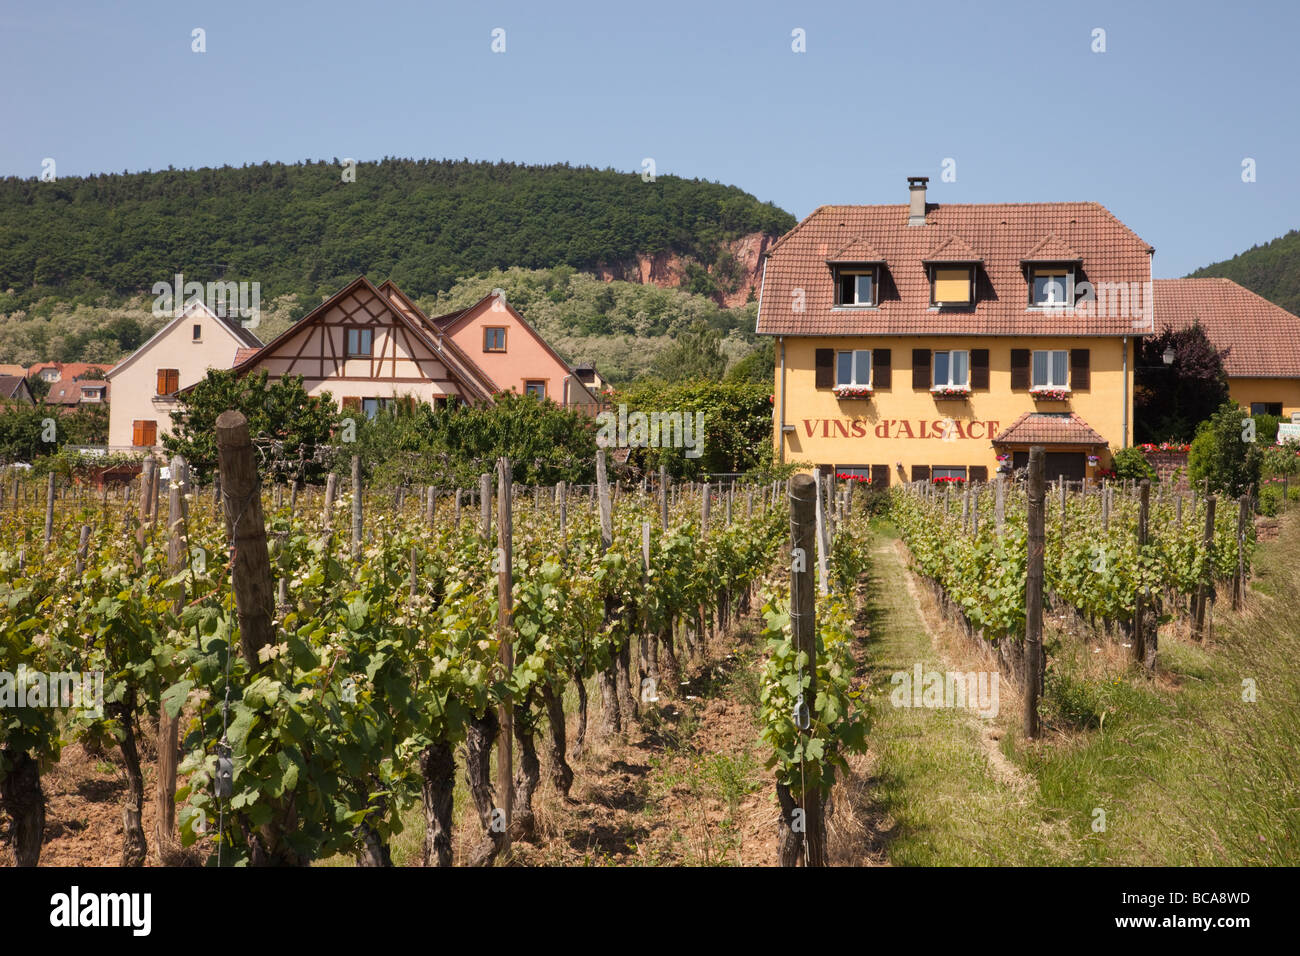 Alsace France Europe Vins de Alsace grapevines growing in a vineyard on the wine route - Stock Image